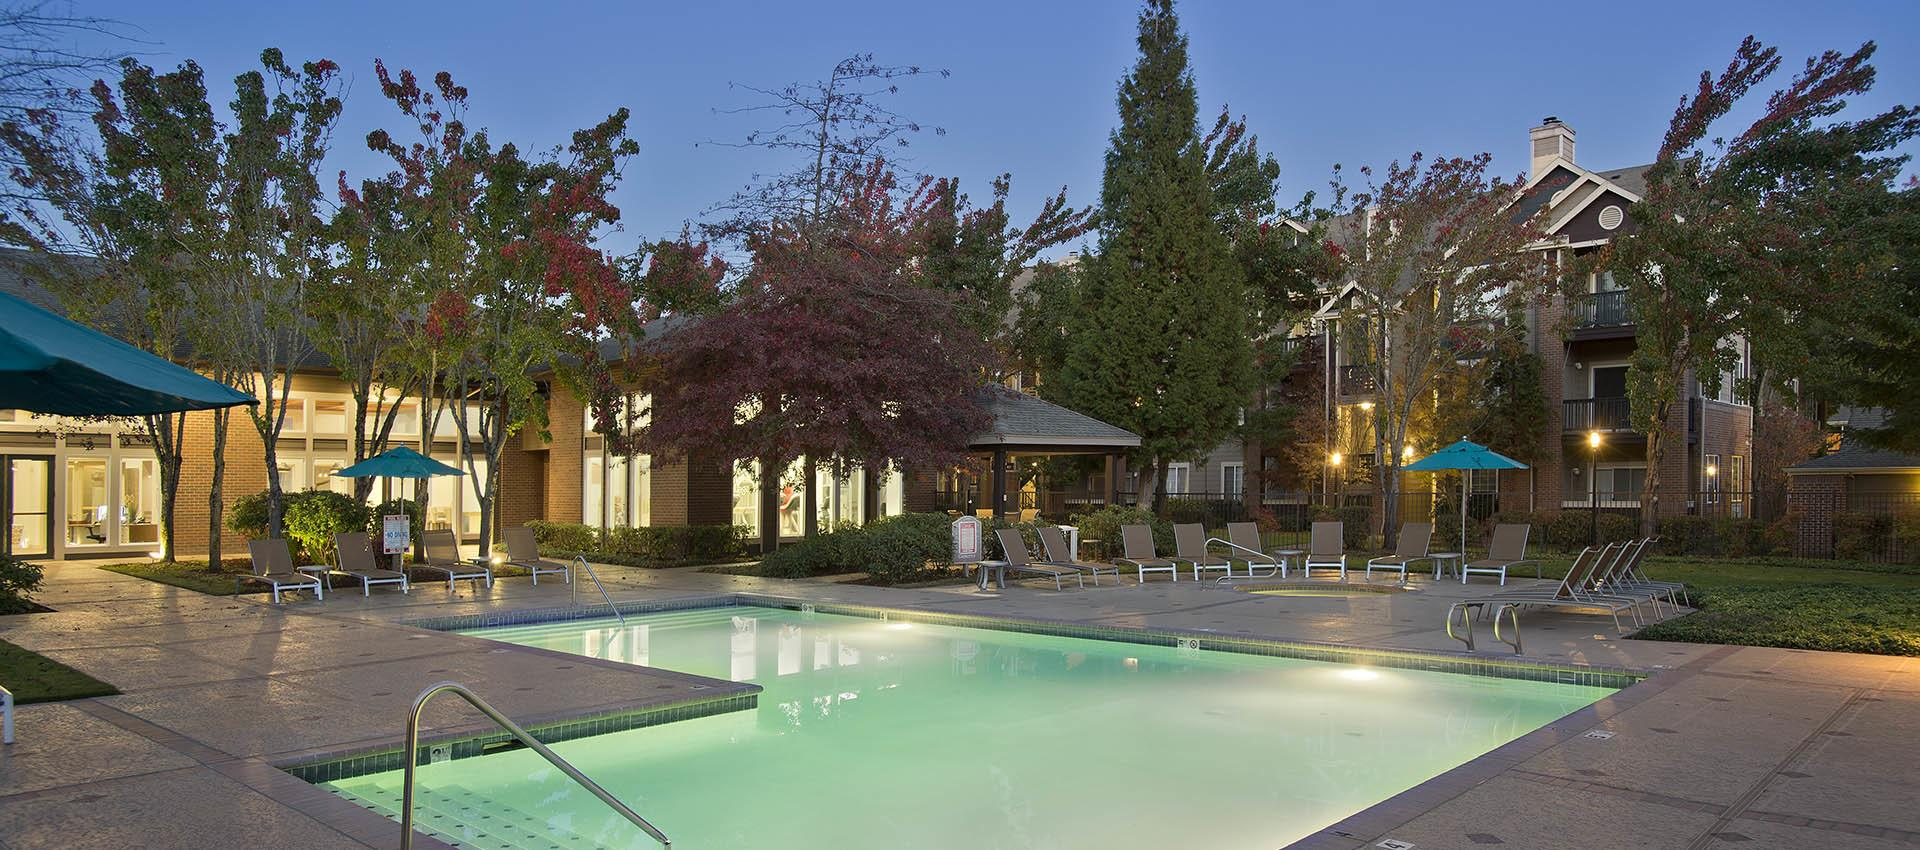 Pool at apartments in Hillsboro, OR